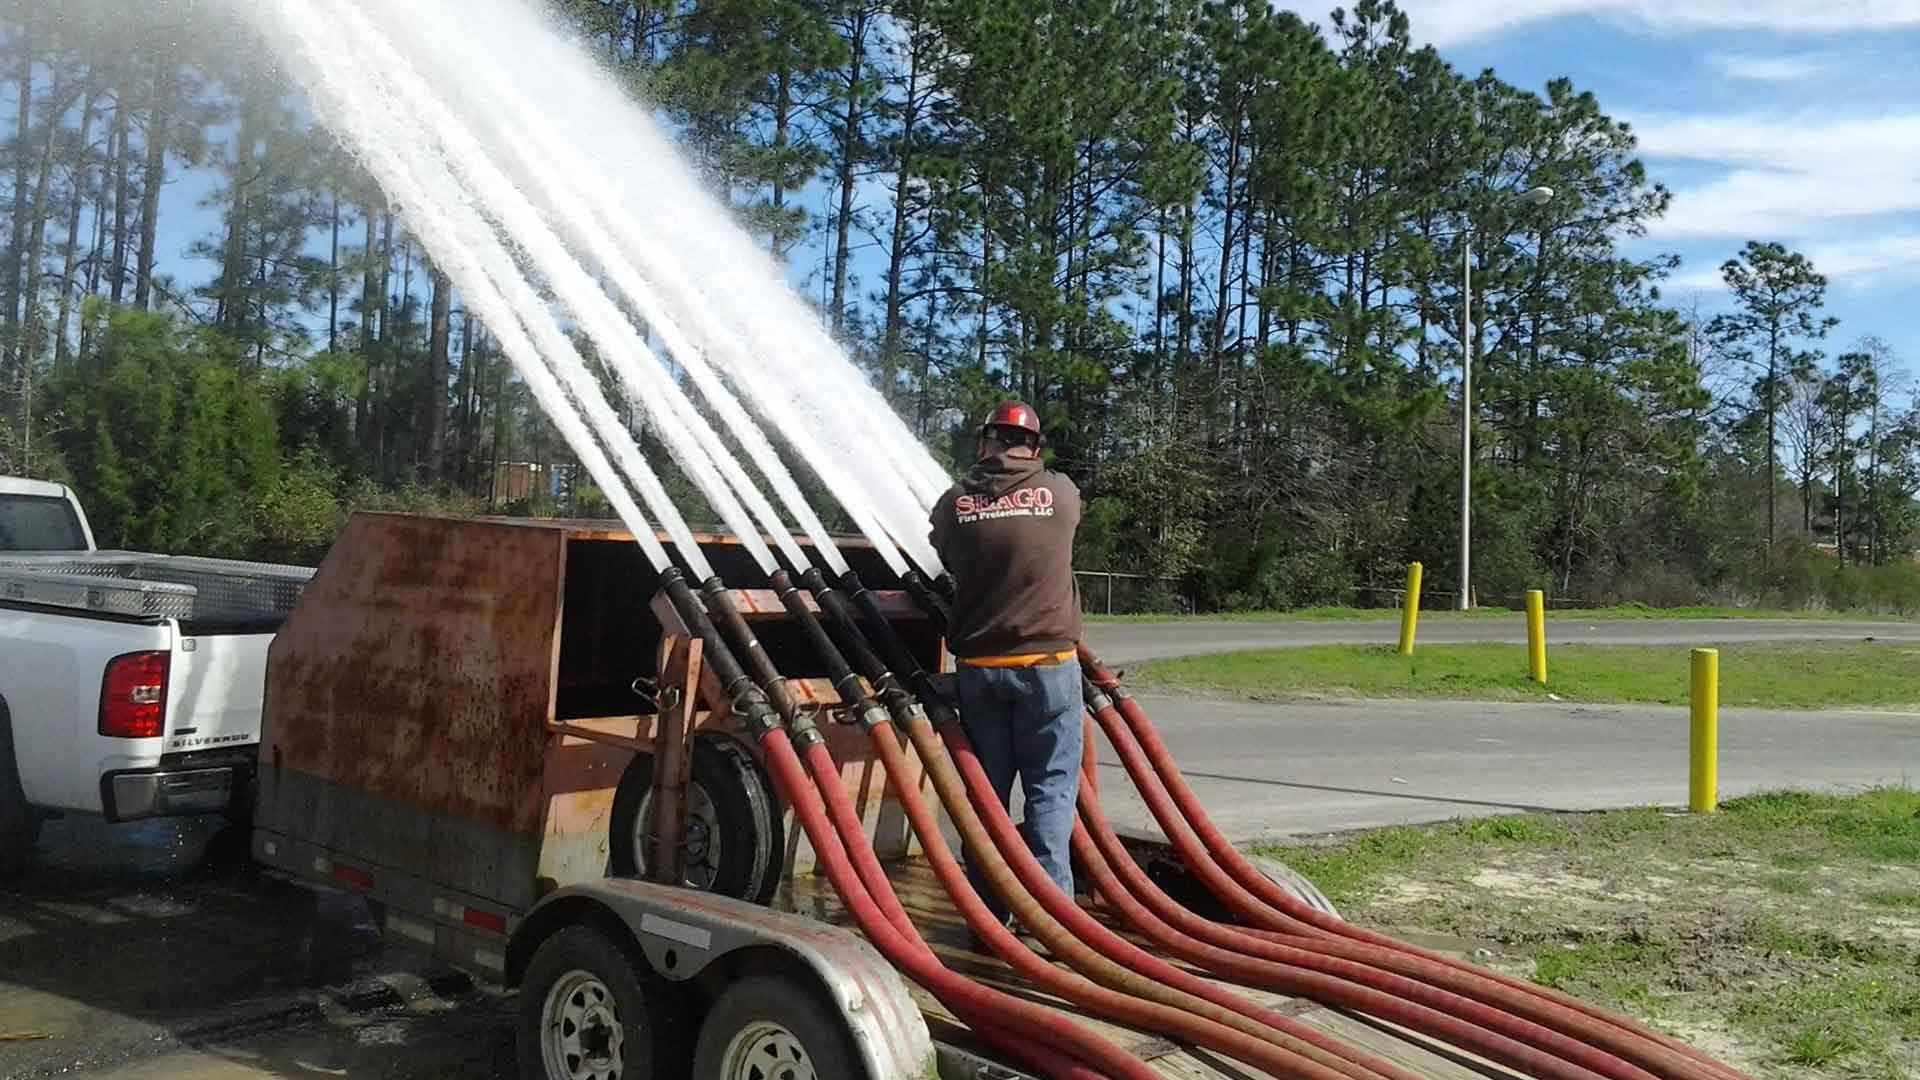 Seago Fire Protection LLC Fire Protection, Fire Sprinkler Services and Fire Sprinkler Installation